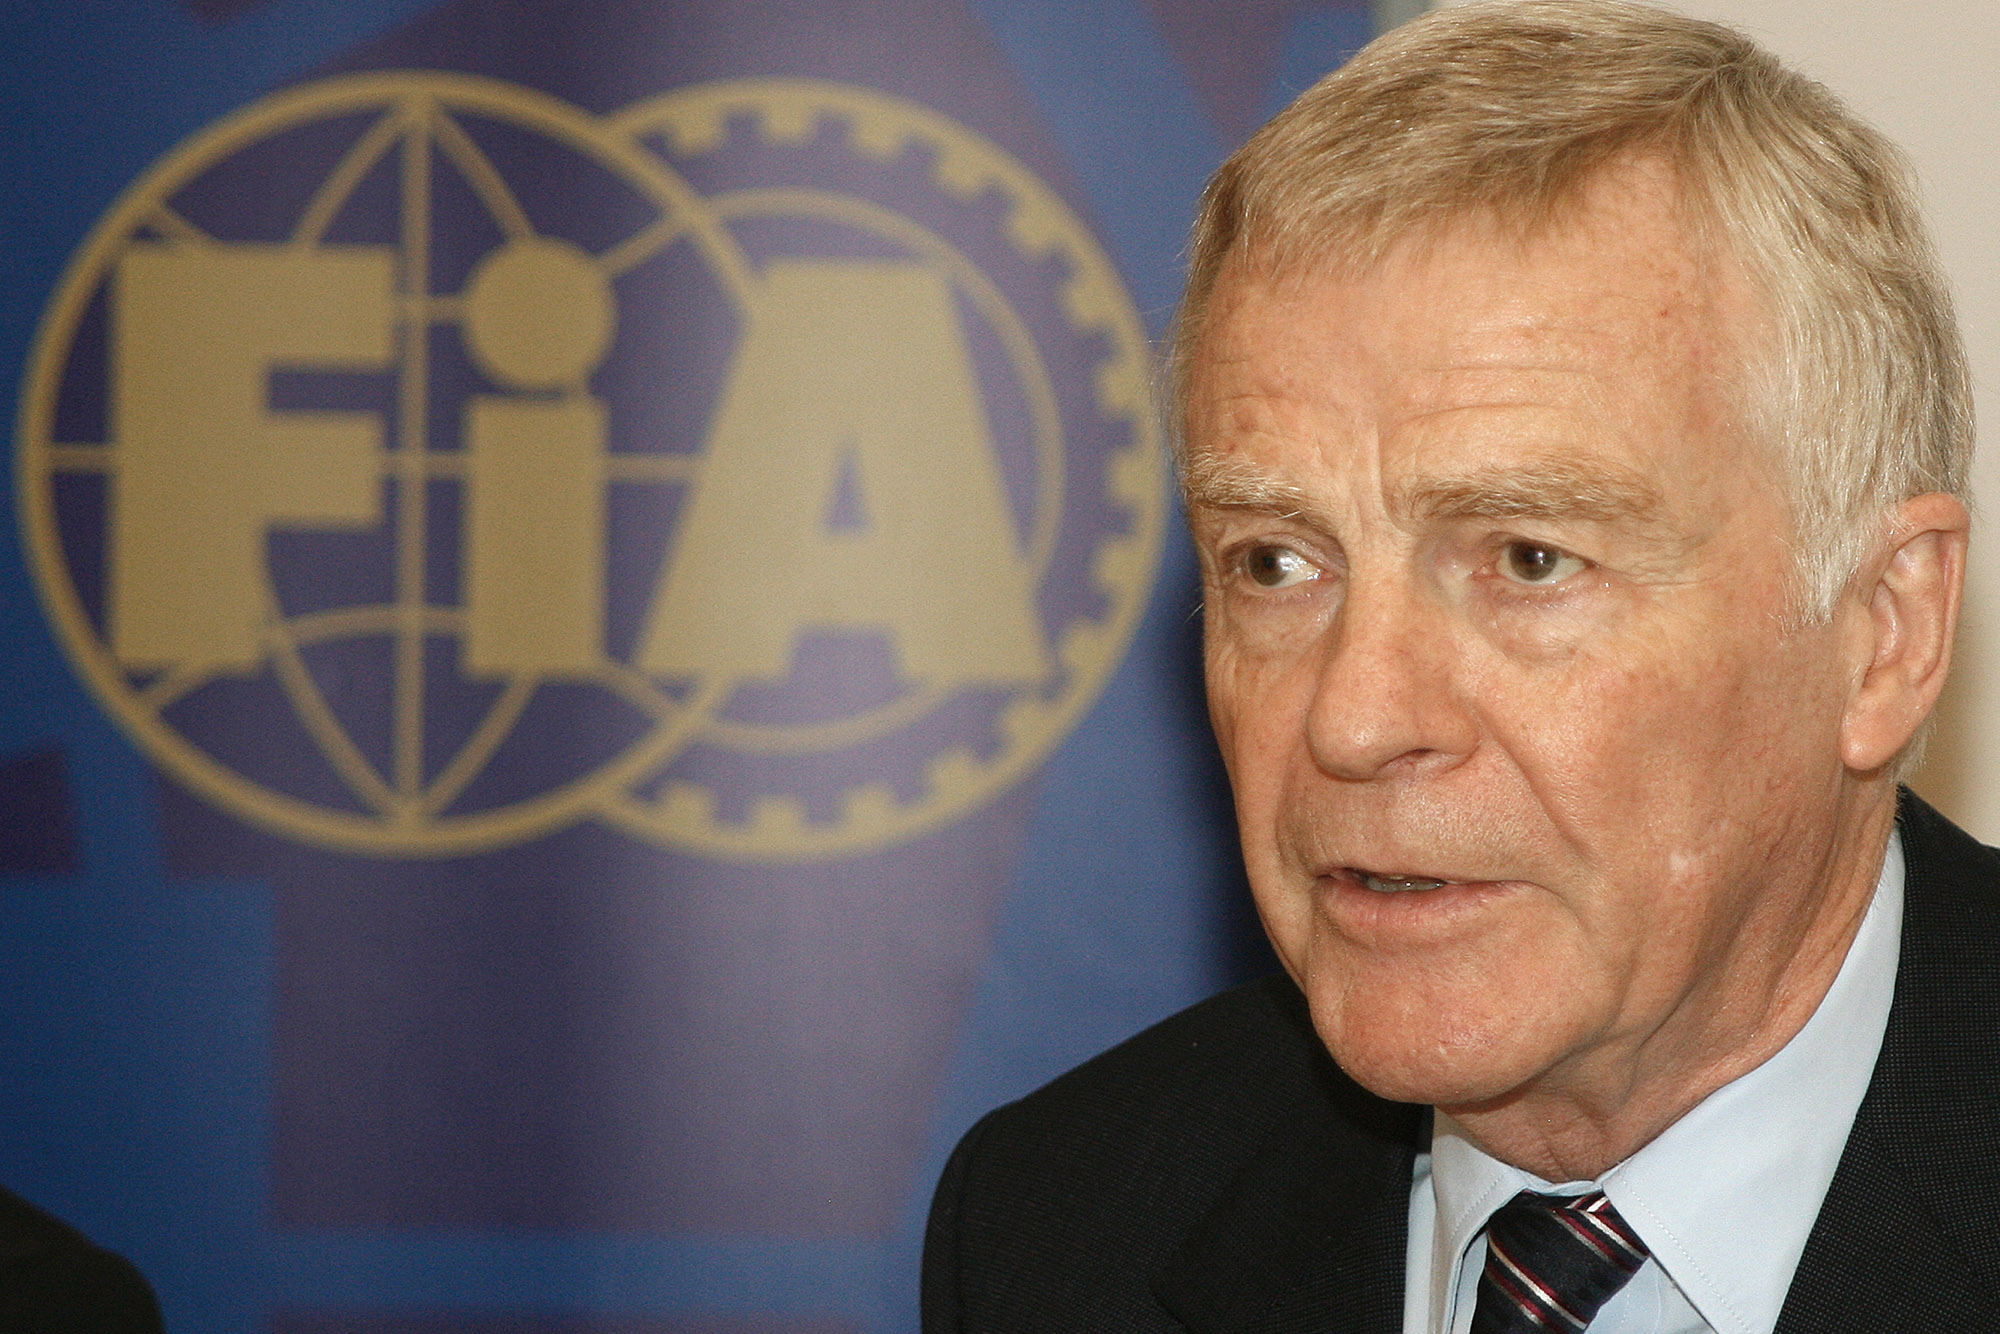 Fans don't forgive you for being indecisive, says former FIA president Max Mosley